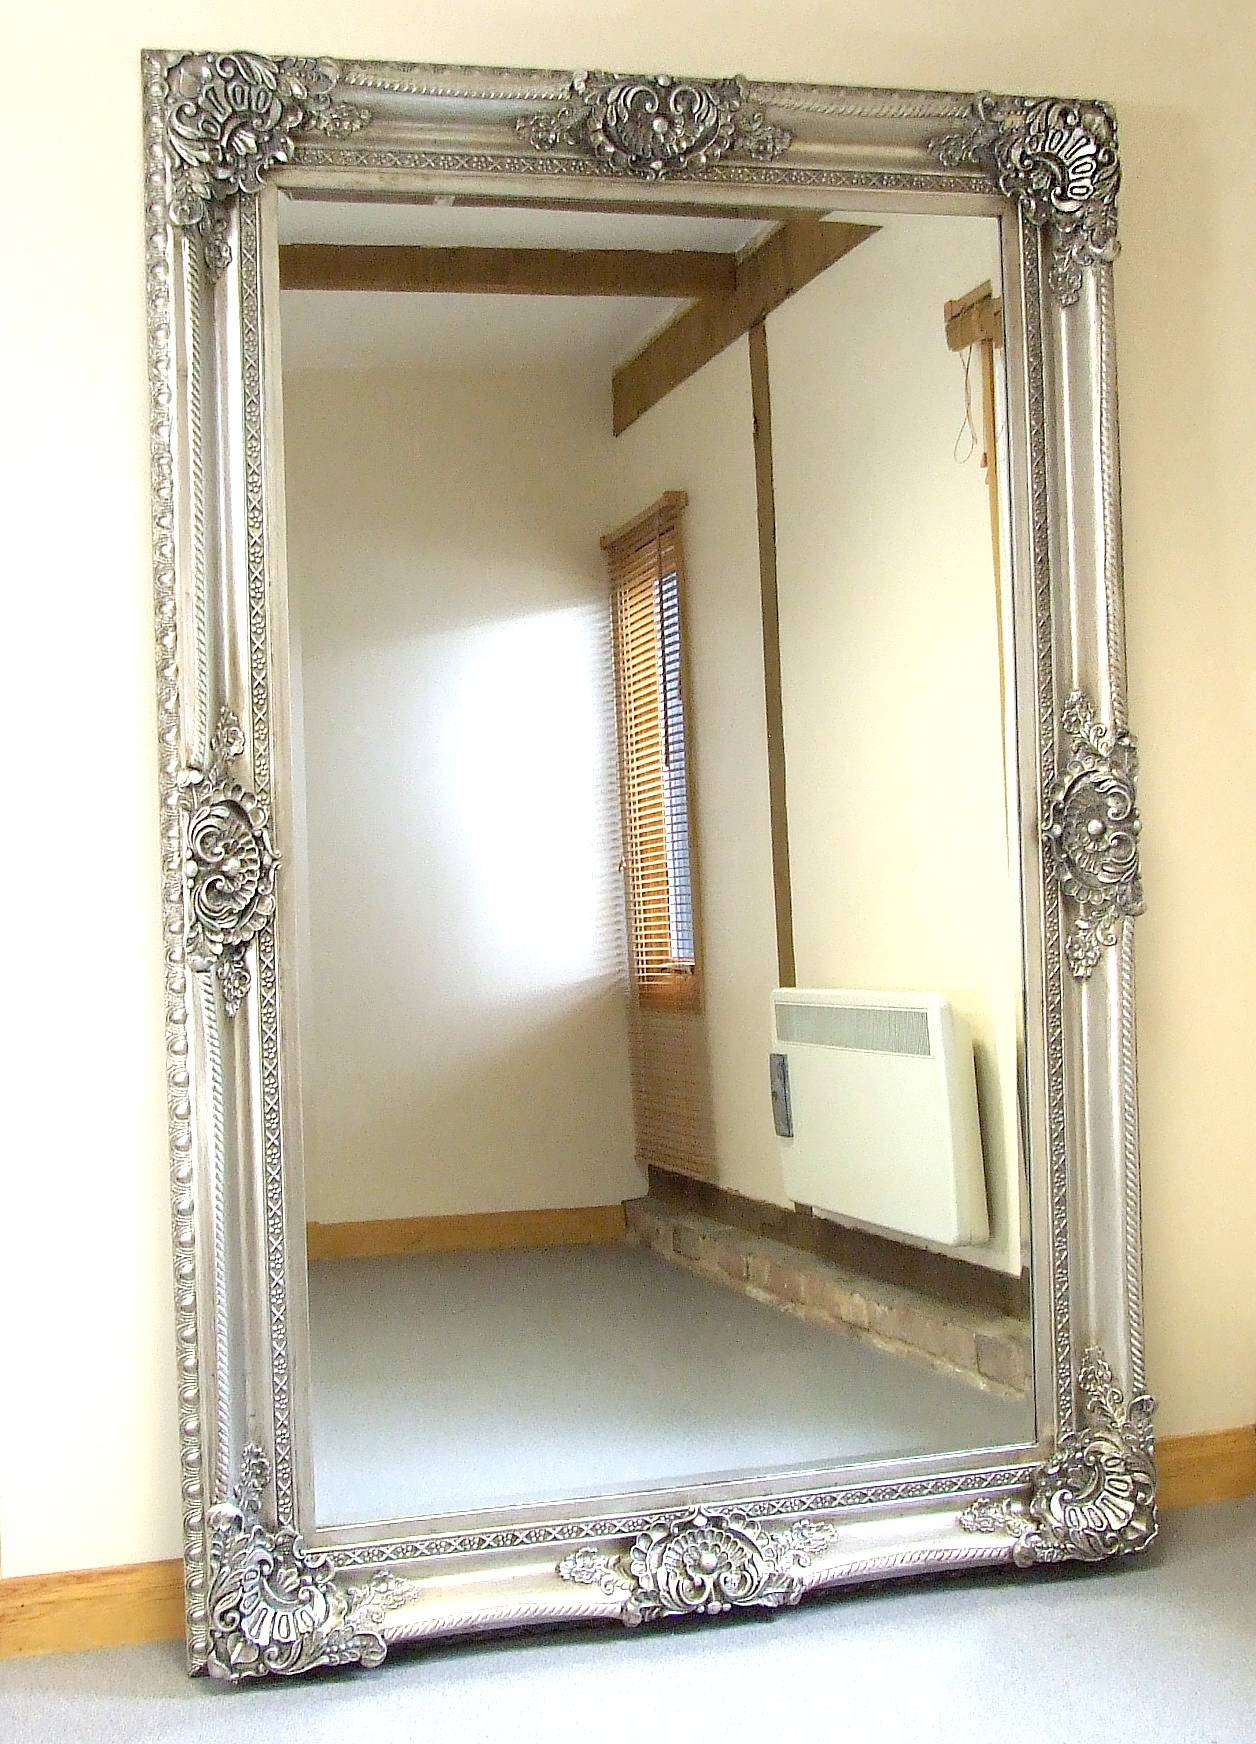 Decorating: Seville Ornate Extra Large French Full Length Wall With Regard To French Full Length Mirrors (View 5 of 25)